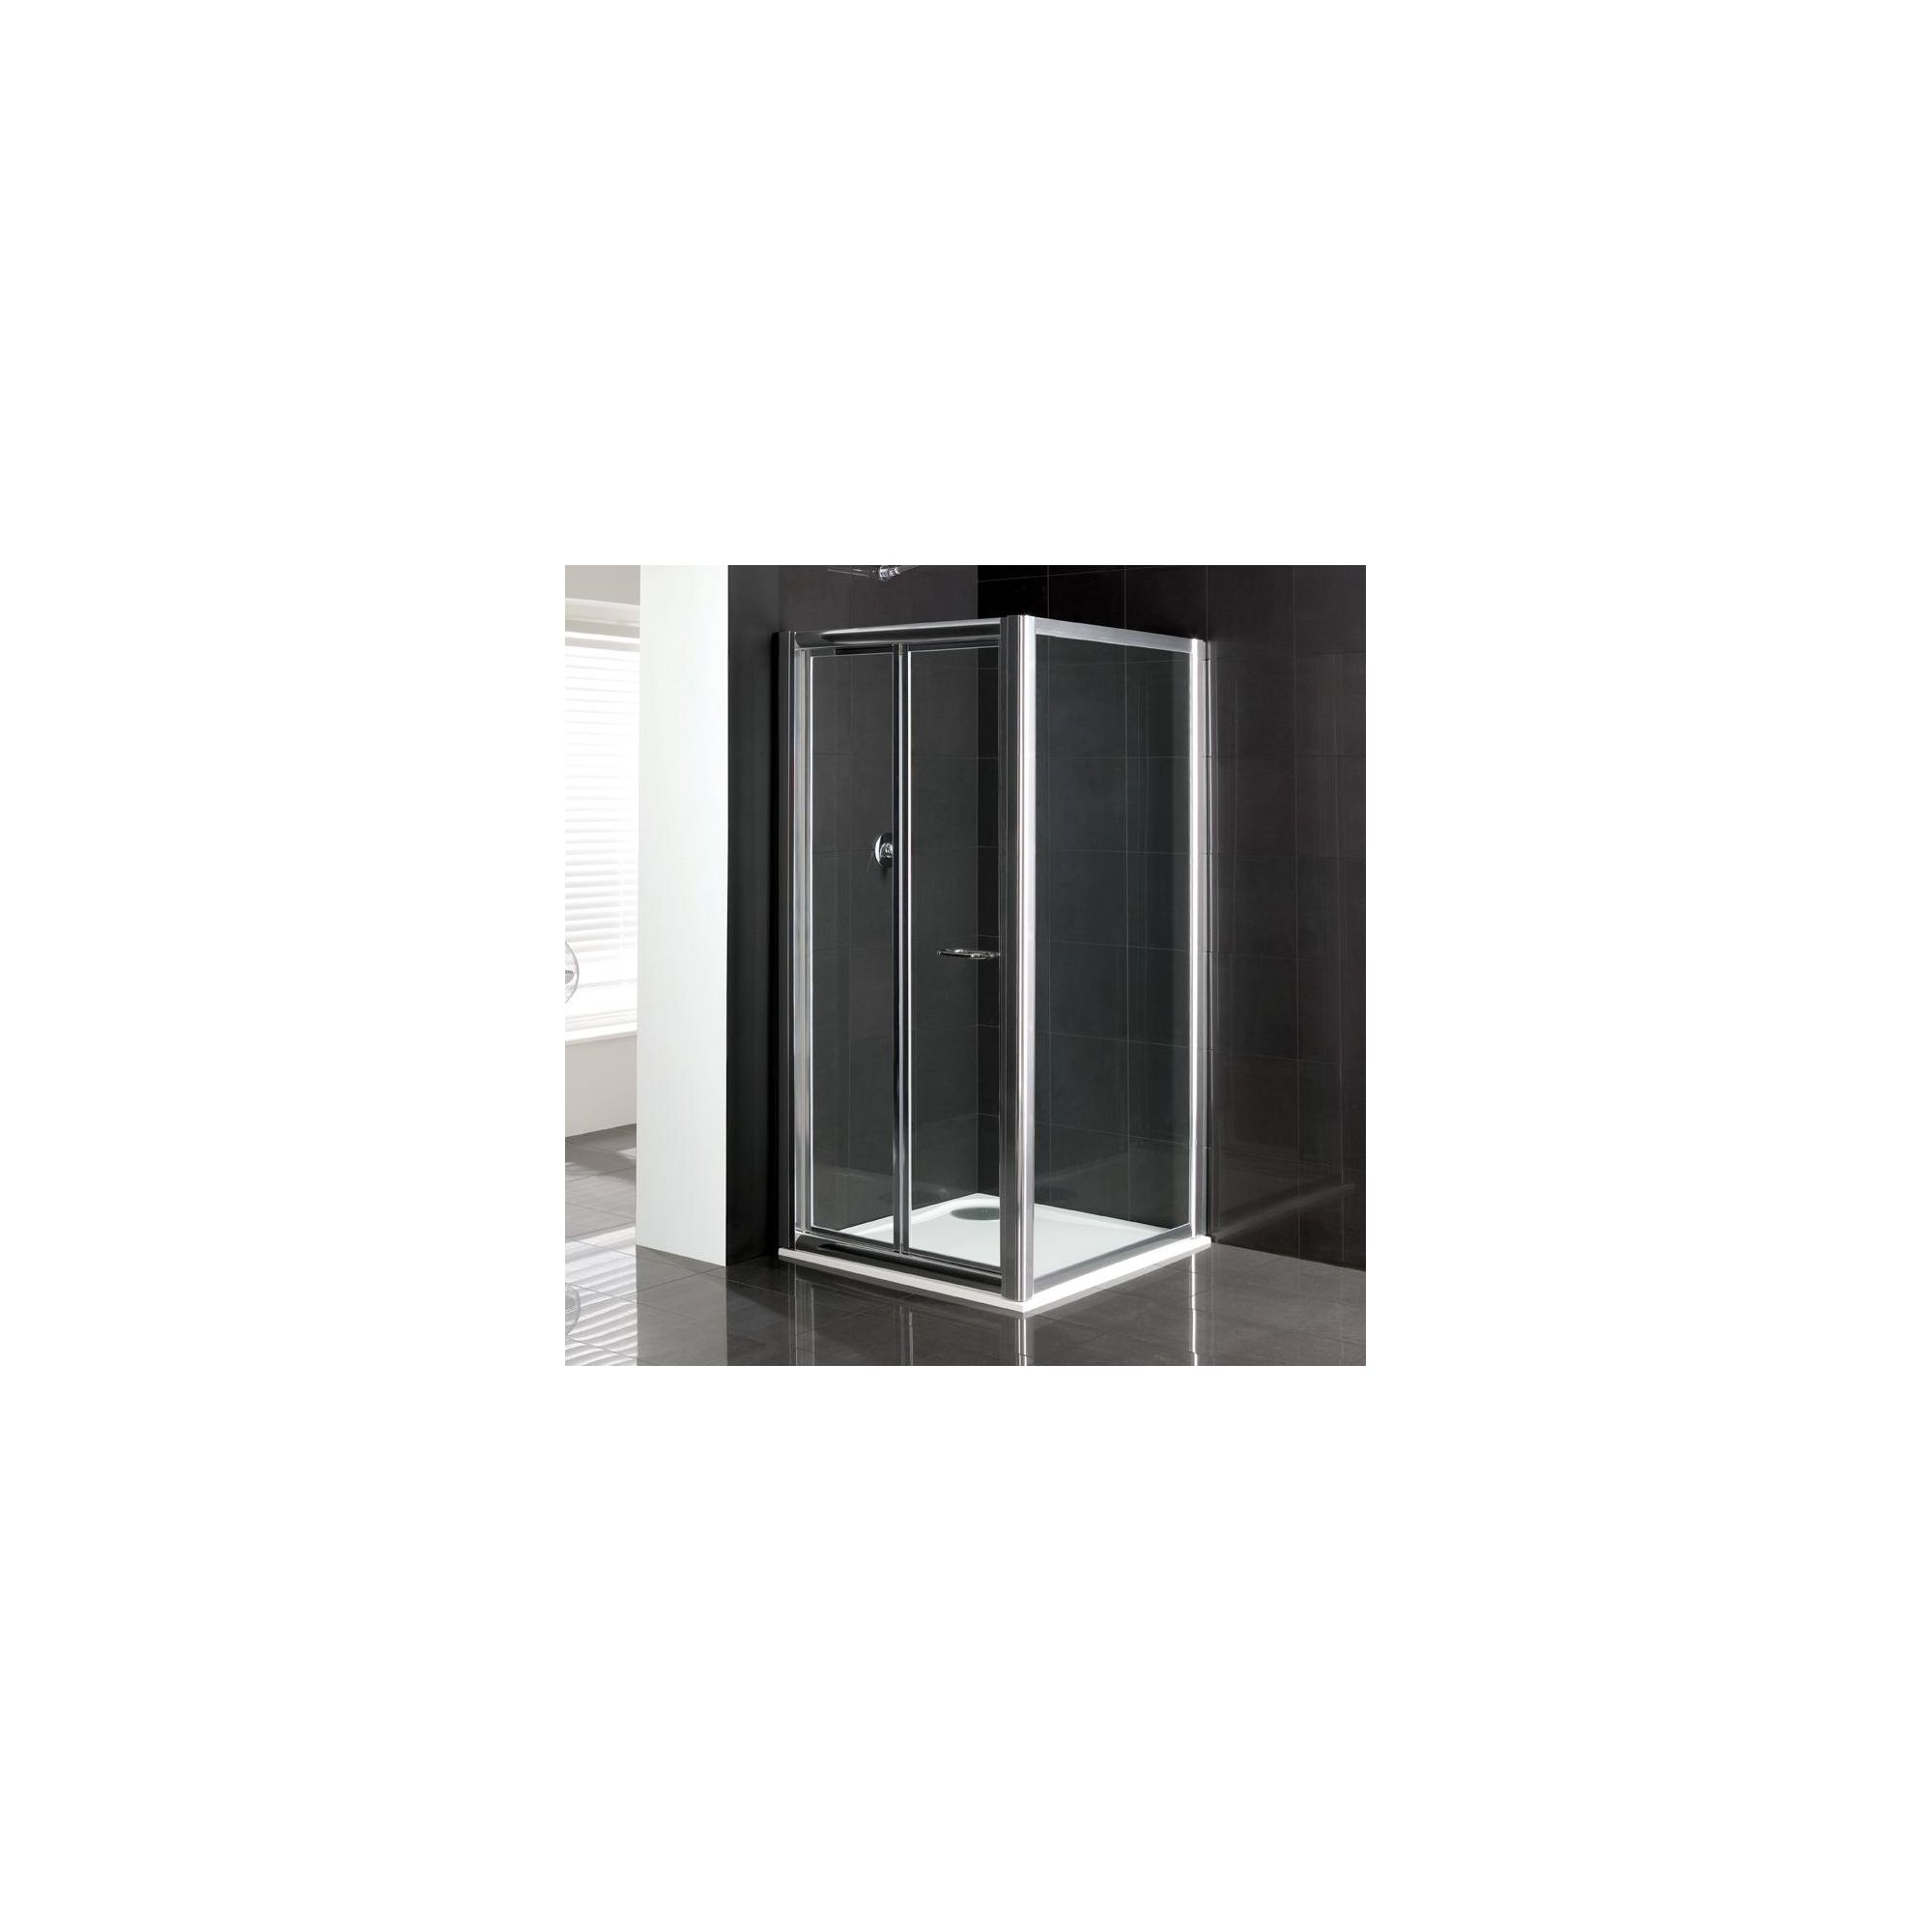 Duchy Elite Silver Bi-Fold Door Shower Enclosure with Towel Rail, 700mm x 700mm, Standard Tray, 6mm Glass at Tesco Direct